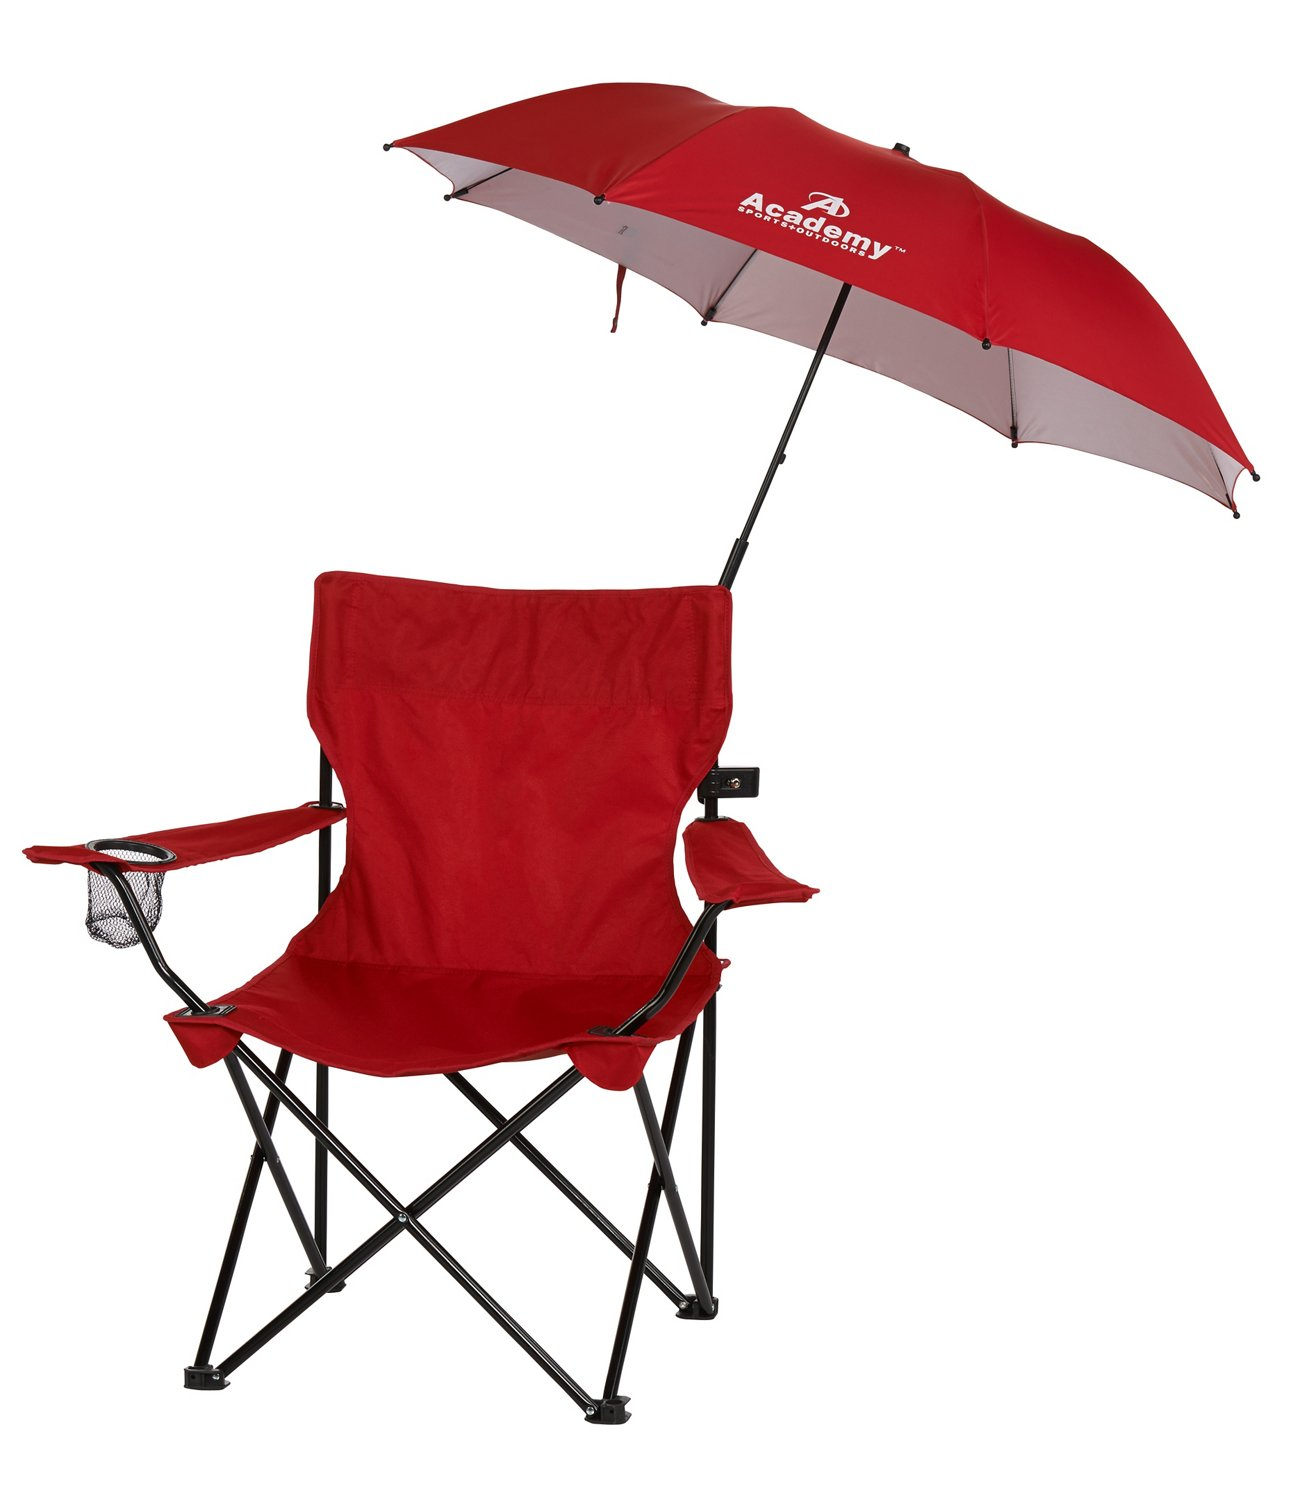 fishing chair clamps french art deco club chairs academy sports outdoors 3 4 ft clamp on umbrella